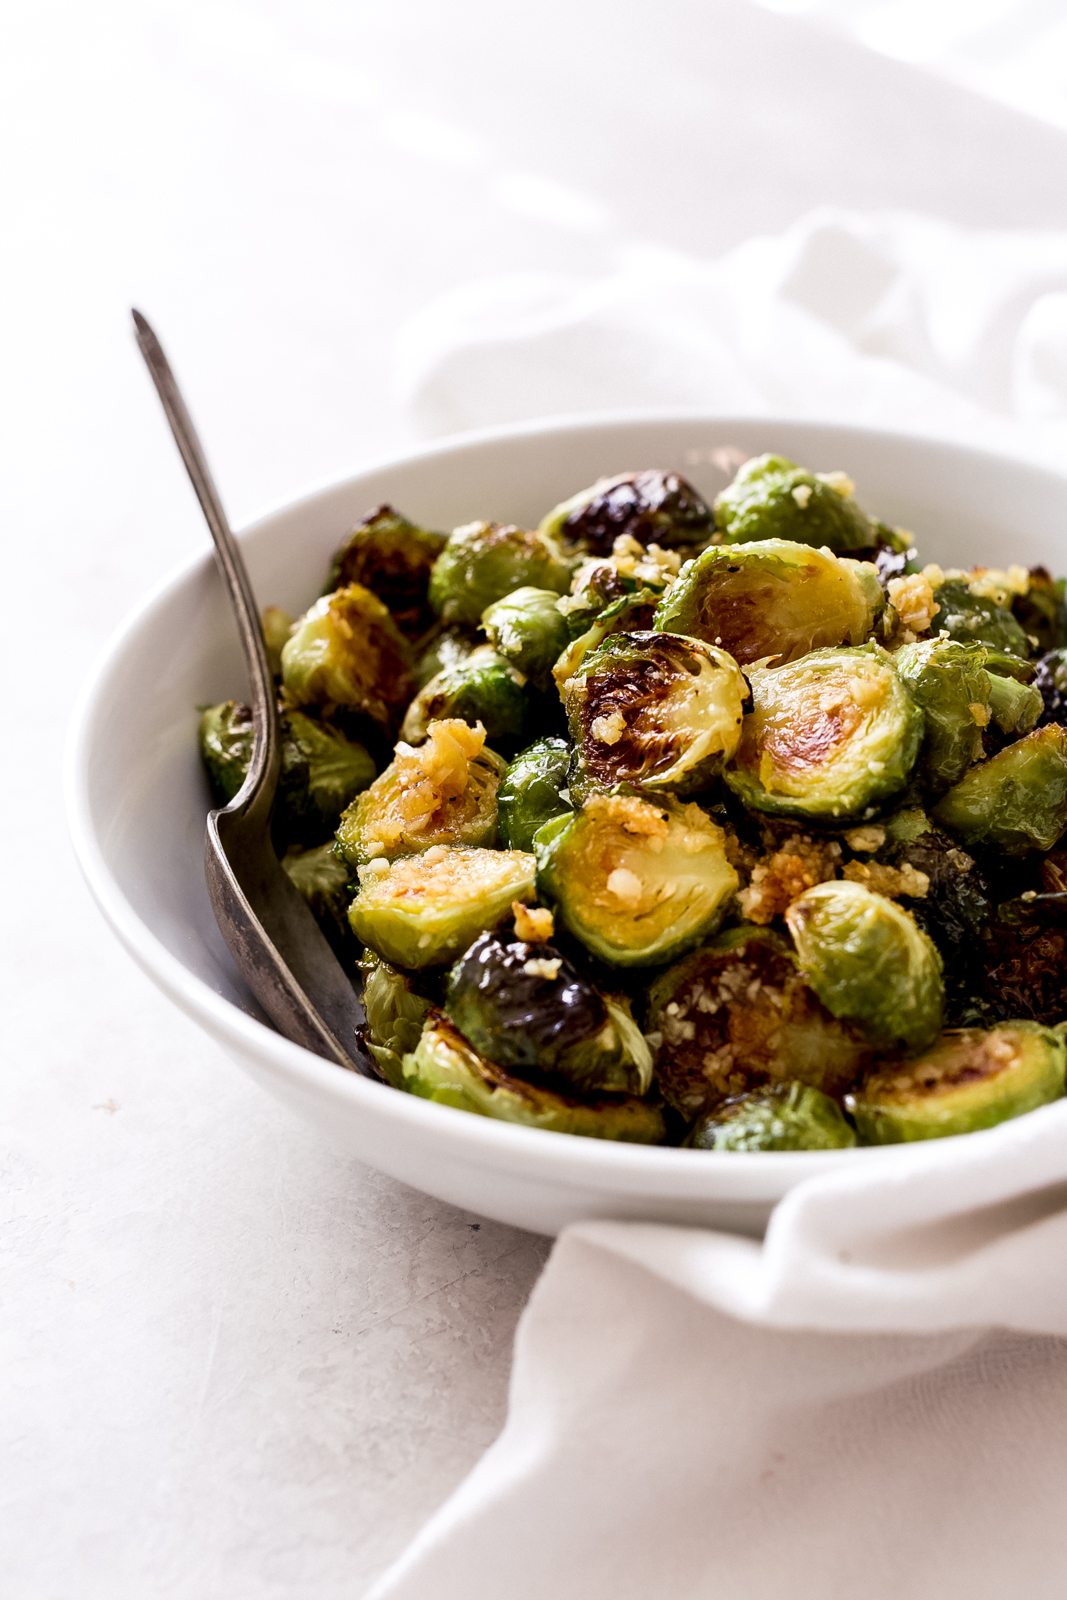 side shot of roasted Brussels sprouts in white bowl with spoon on grey surface with white tea towel